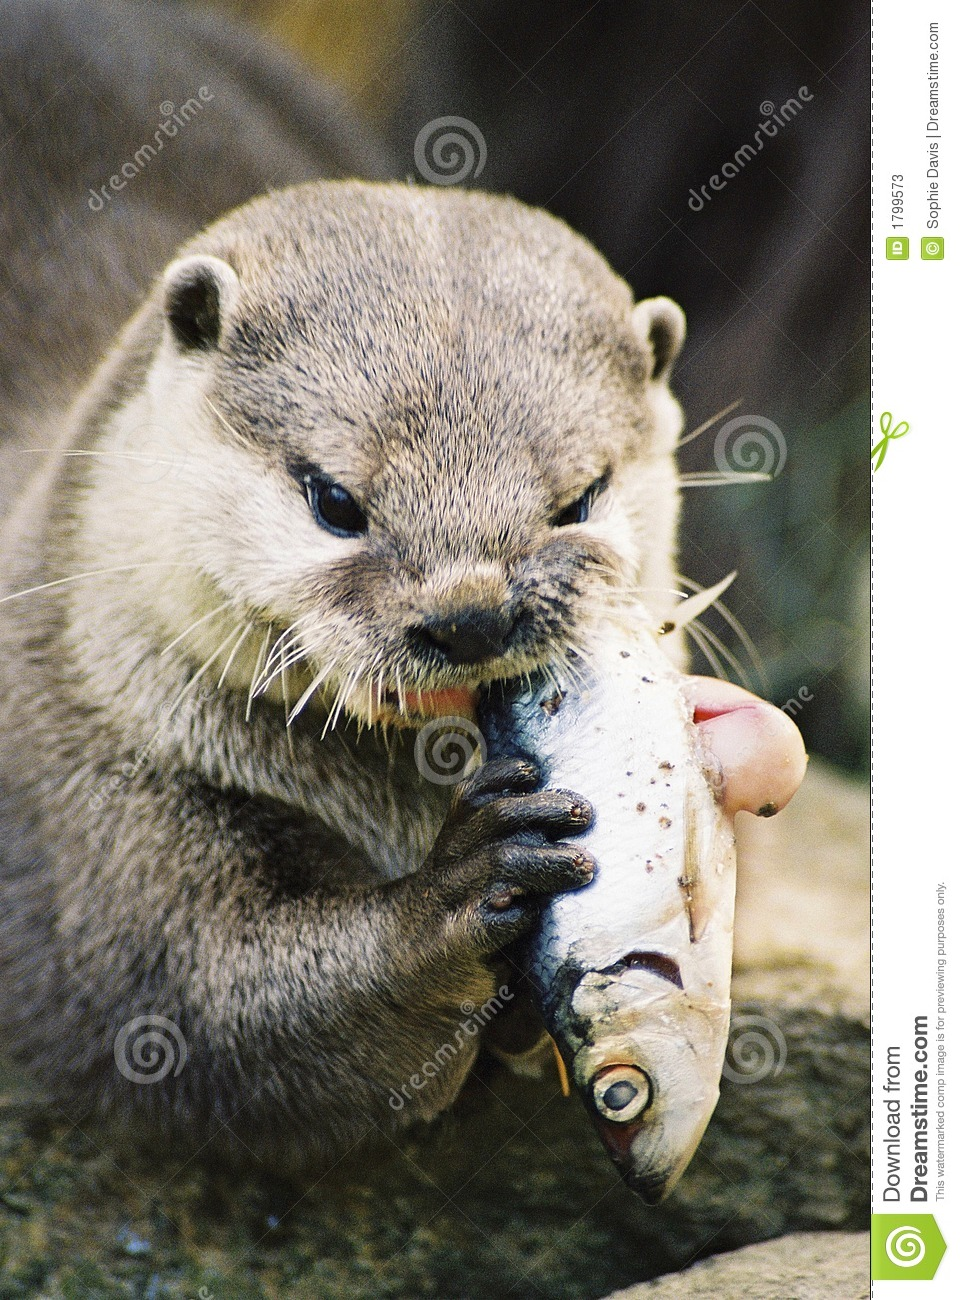 Otter eating a fish stock image image of holding brown for Dreaming of eating fish